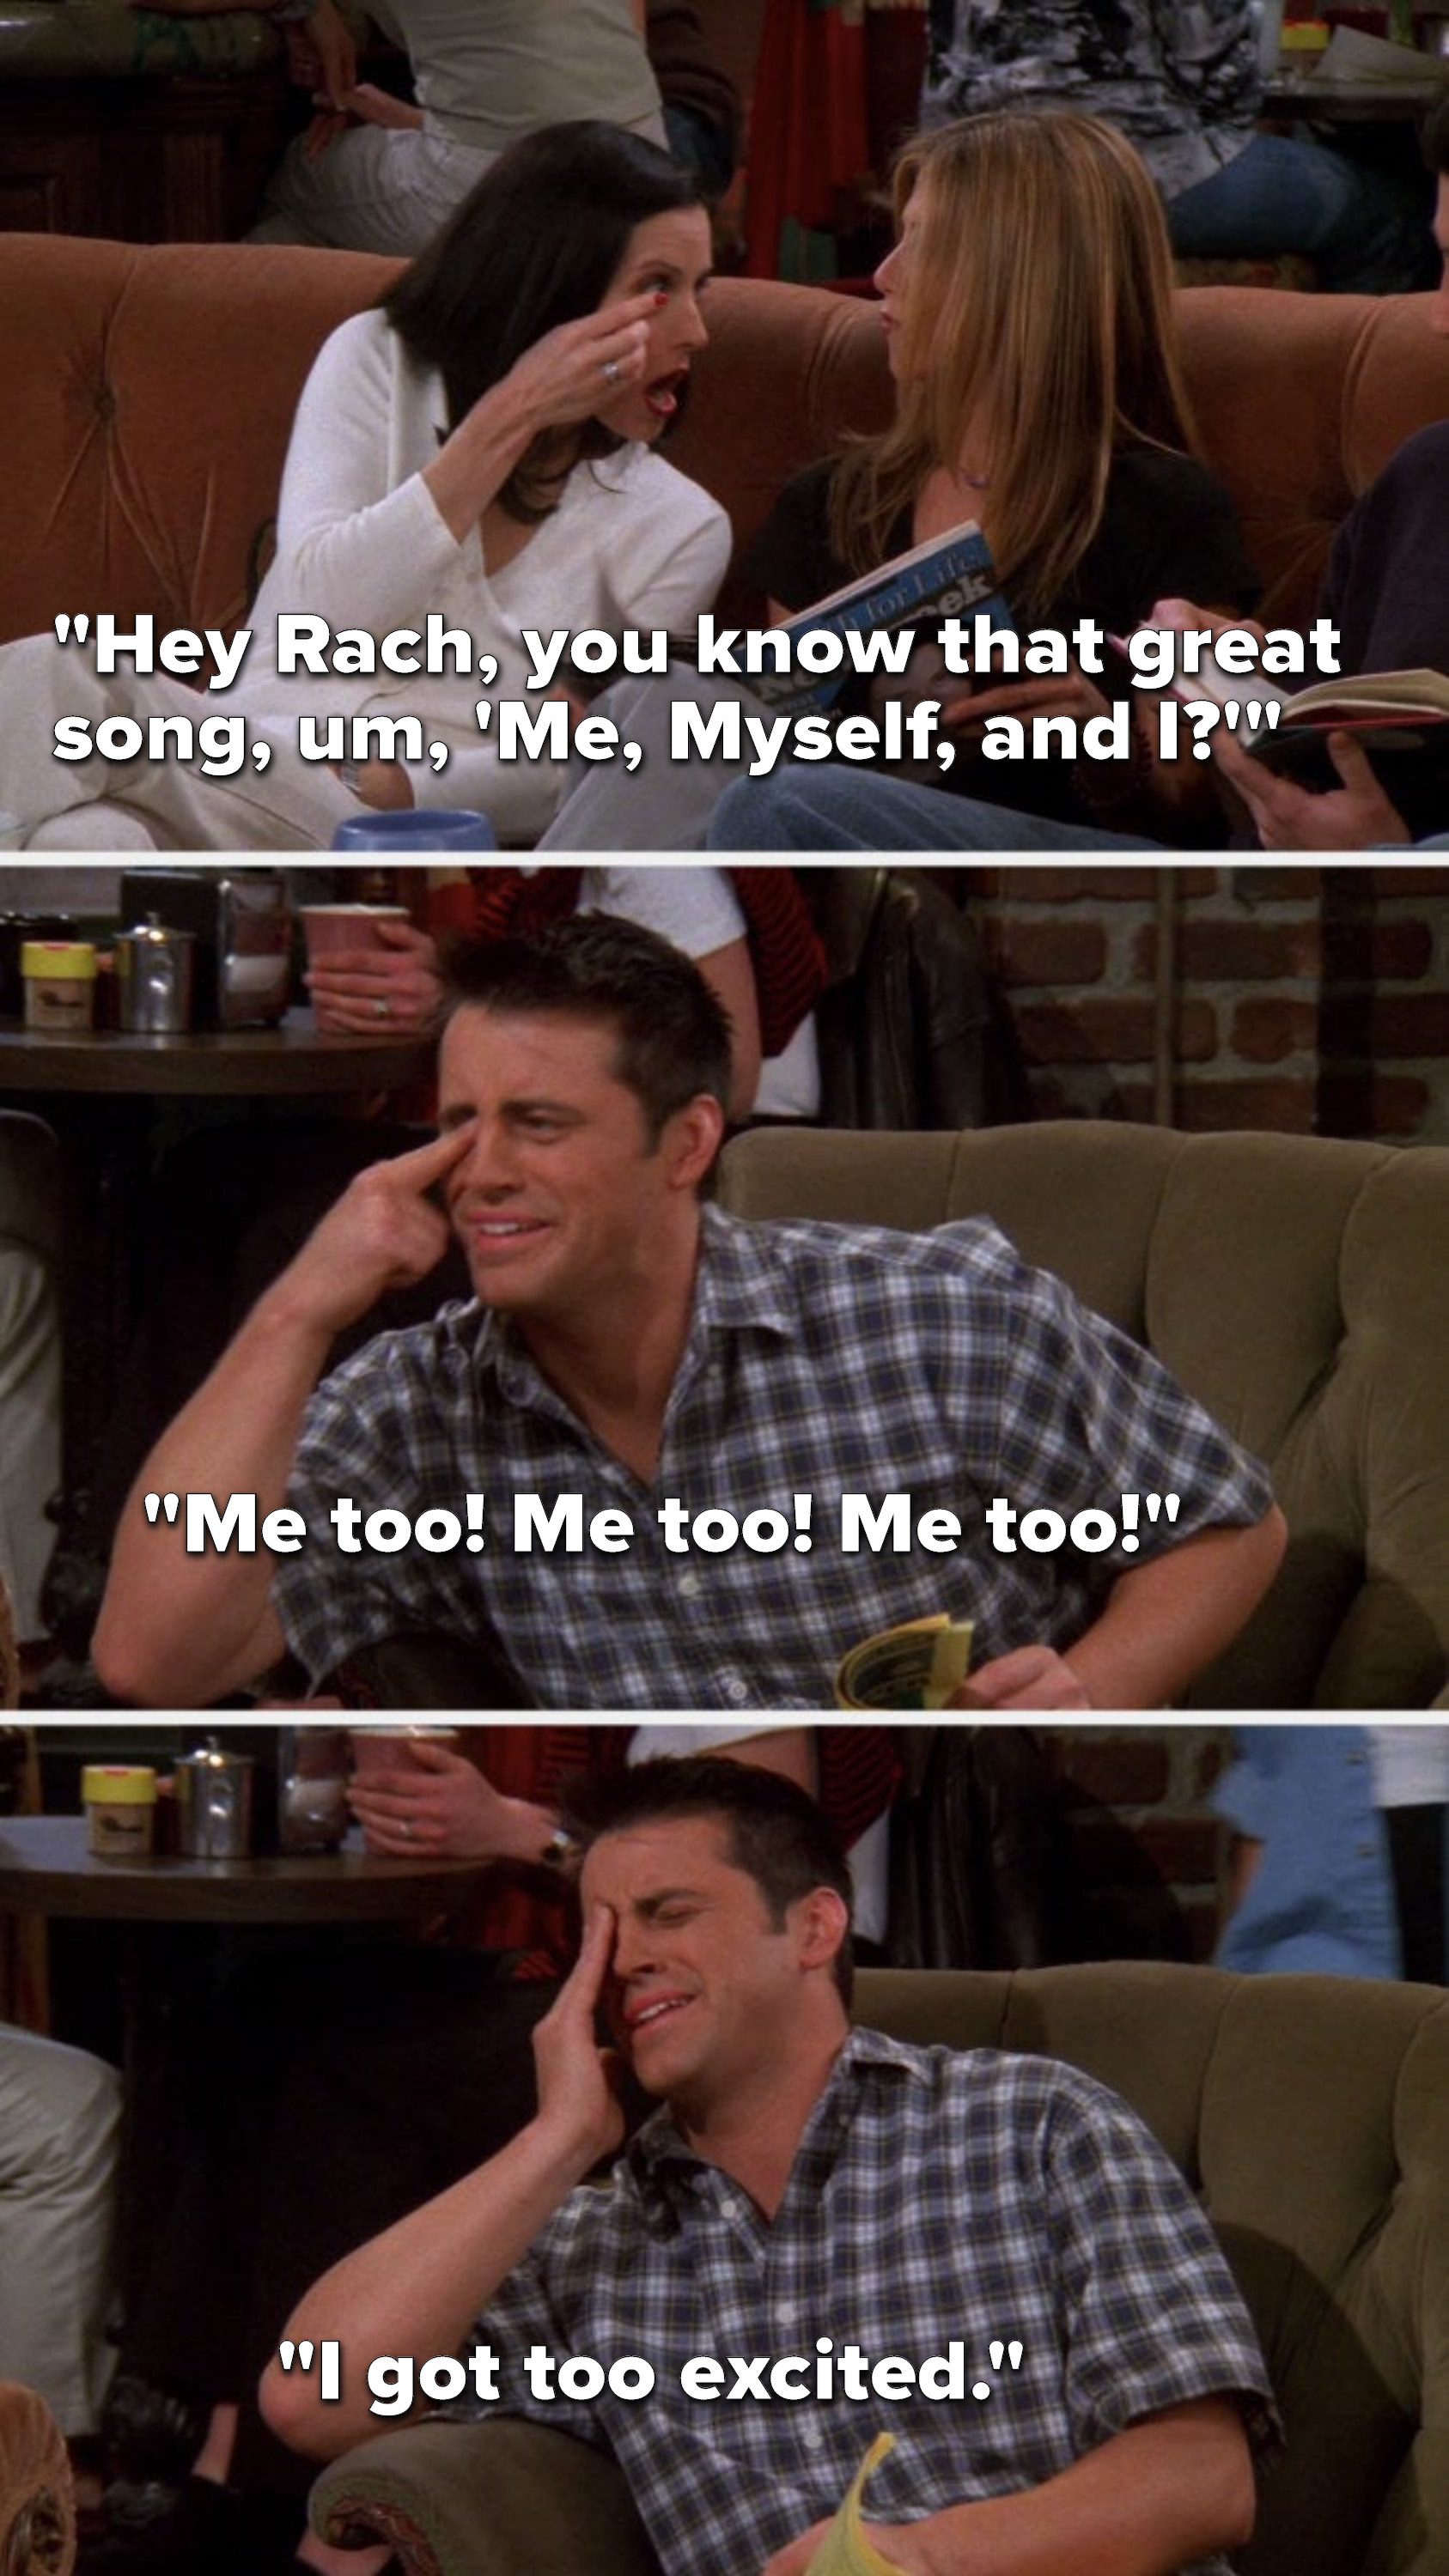 """Monica says, """"Hey Rach, you know that great song, um, 'Me, Myself, and I"""" and touches her eye, Joey says """"Me too, me too, me too"""" and touches his eye, then in pain he says, """"I got too excited"""""""